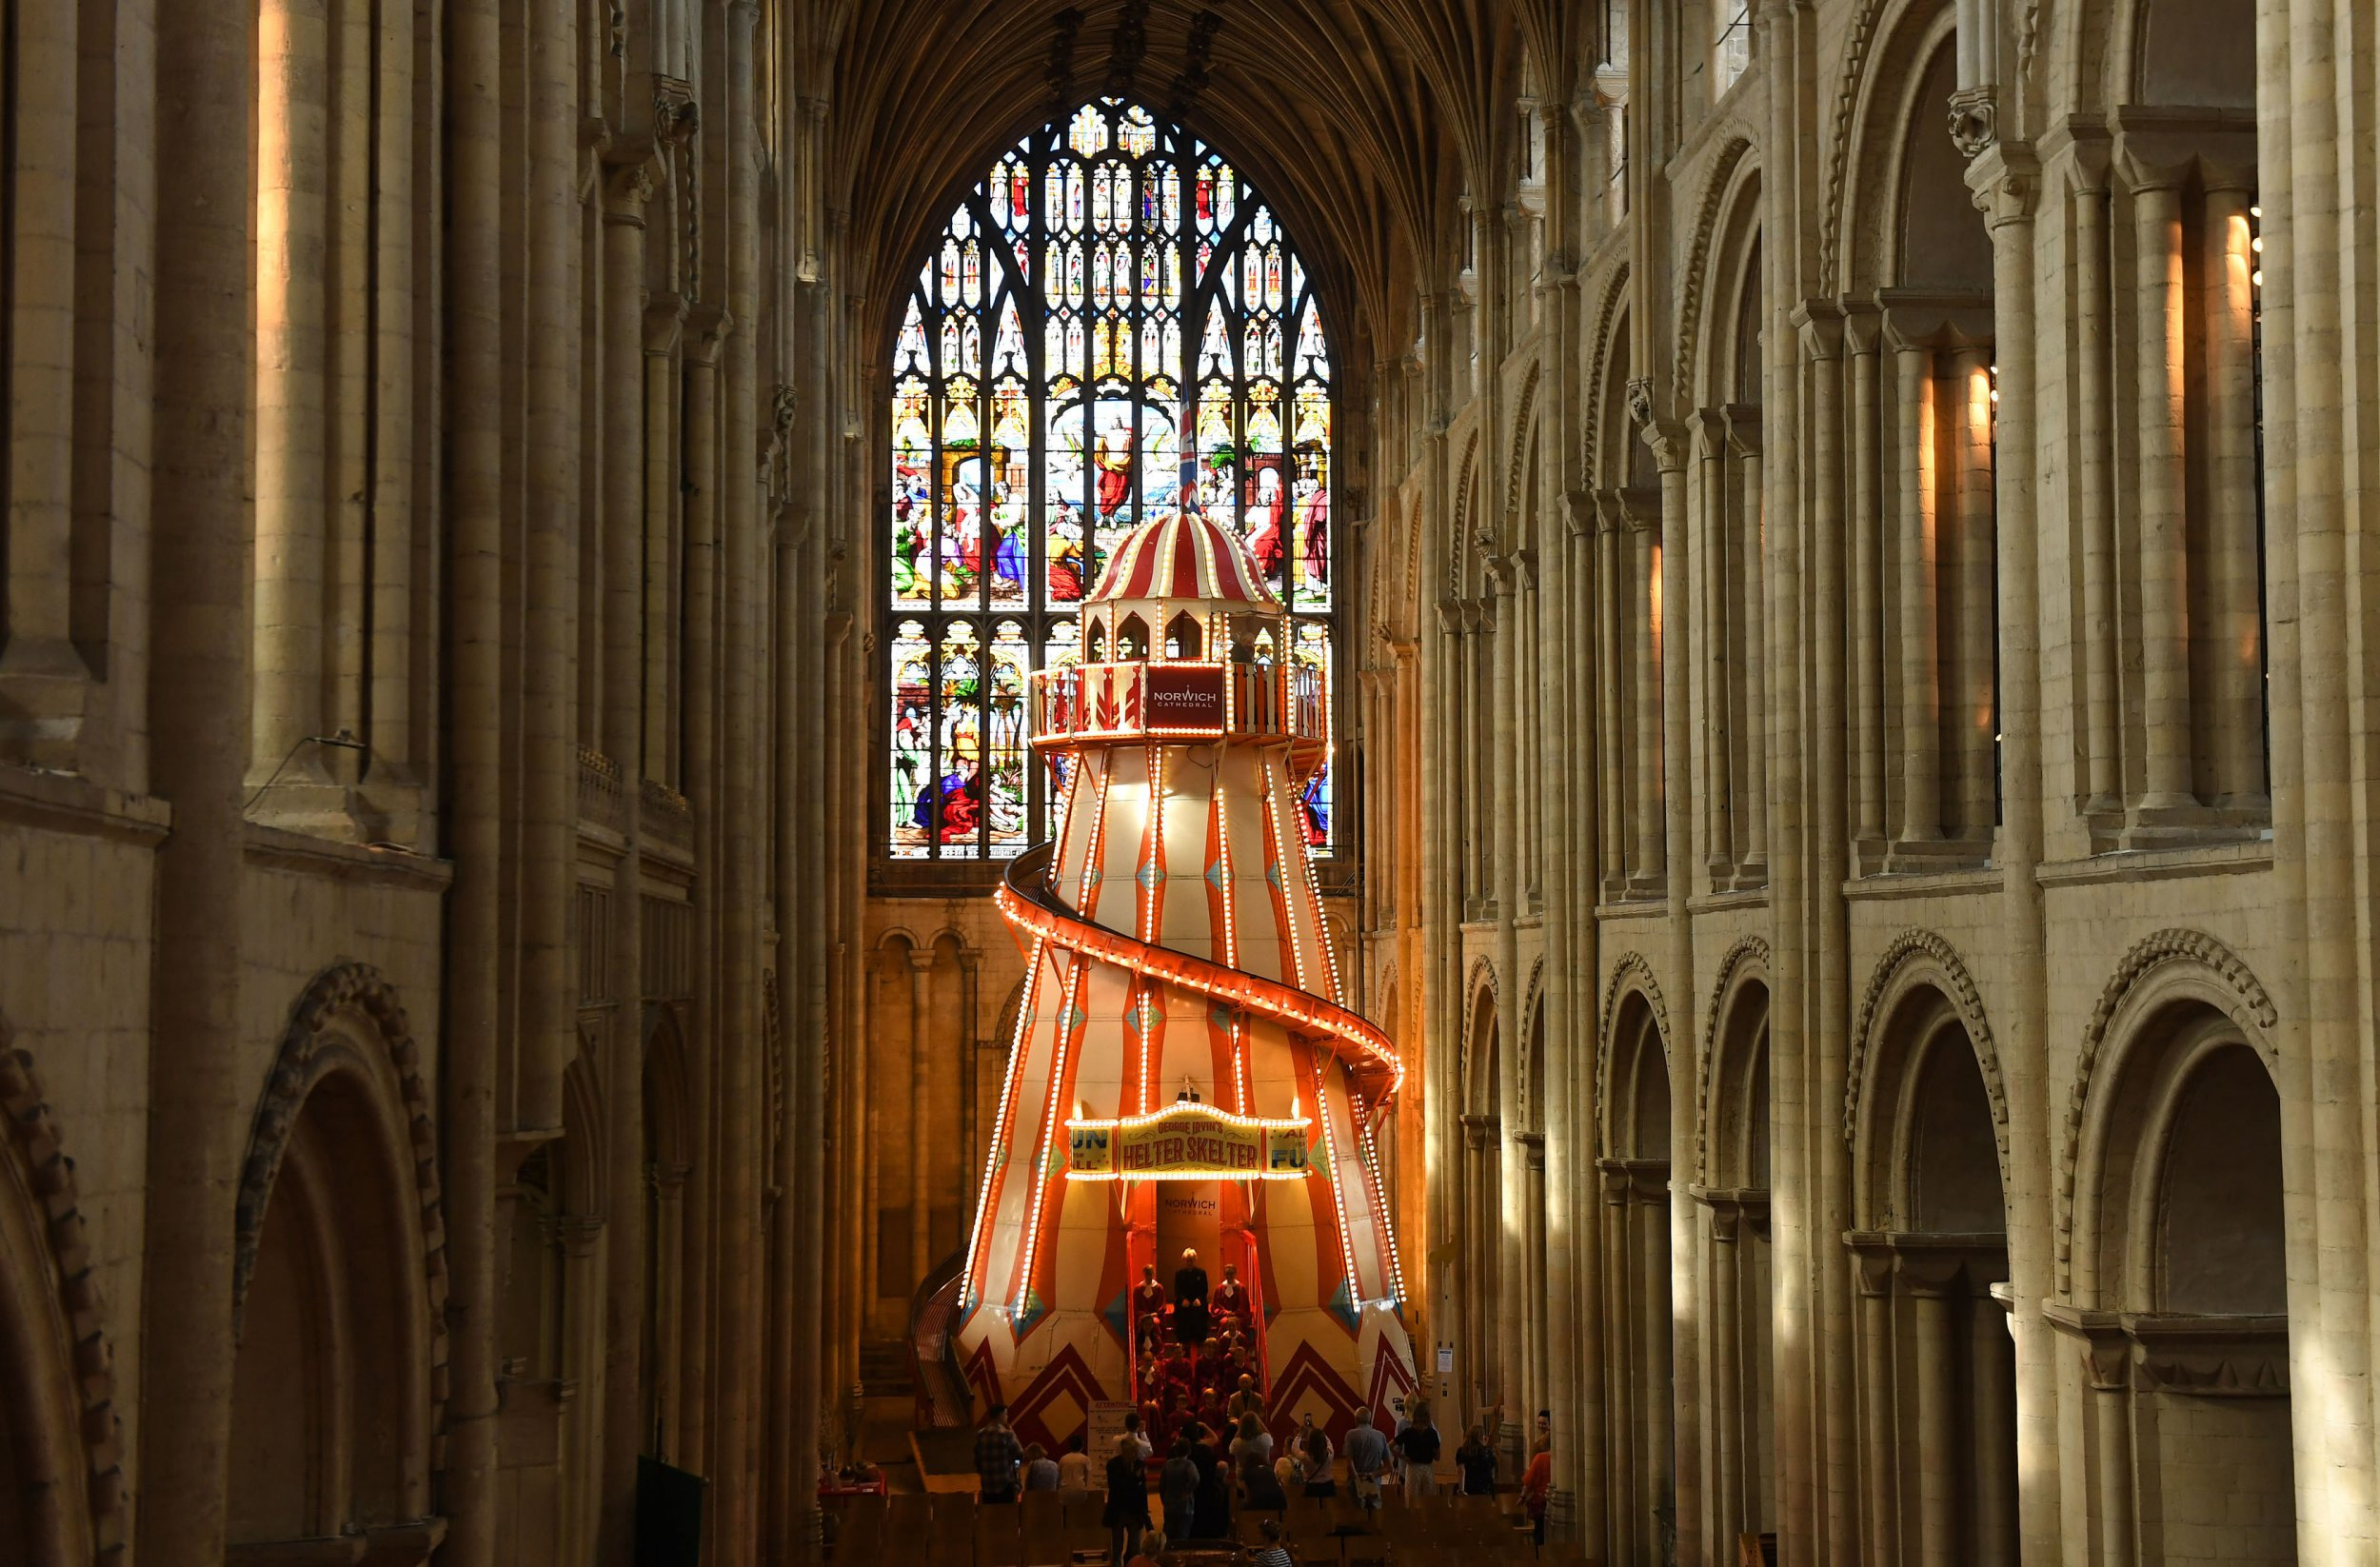 A 40ft helter skelter commissioned inside Norwich Cathedral as partial of a Seeing It Differently plan that aims to give people a possibility to knowledge a Cathedral in an wholly new approach and open adult conversations about faith. PRESS ASSOCIATION Photo. Picture date: Thursday Aug 8, 2019. Photo credit should read: Joe Giddens/PA Wire